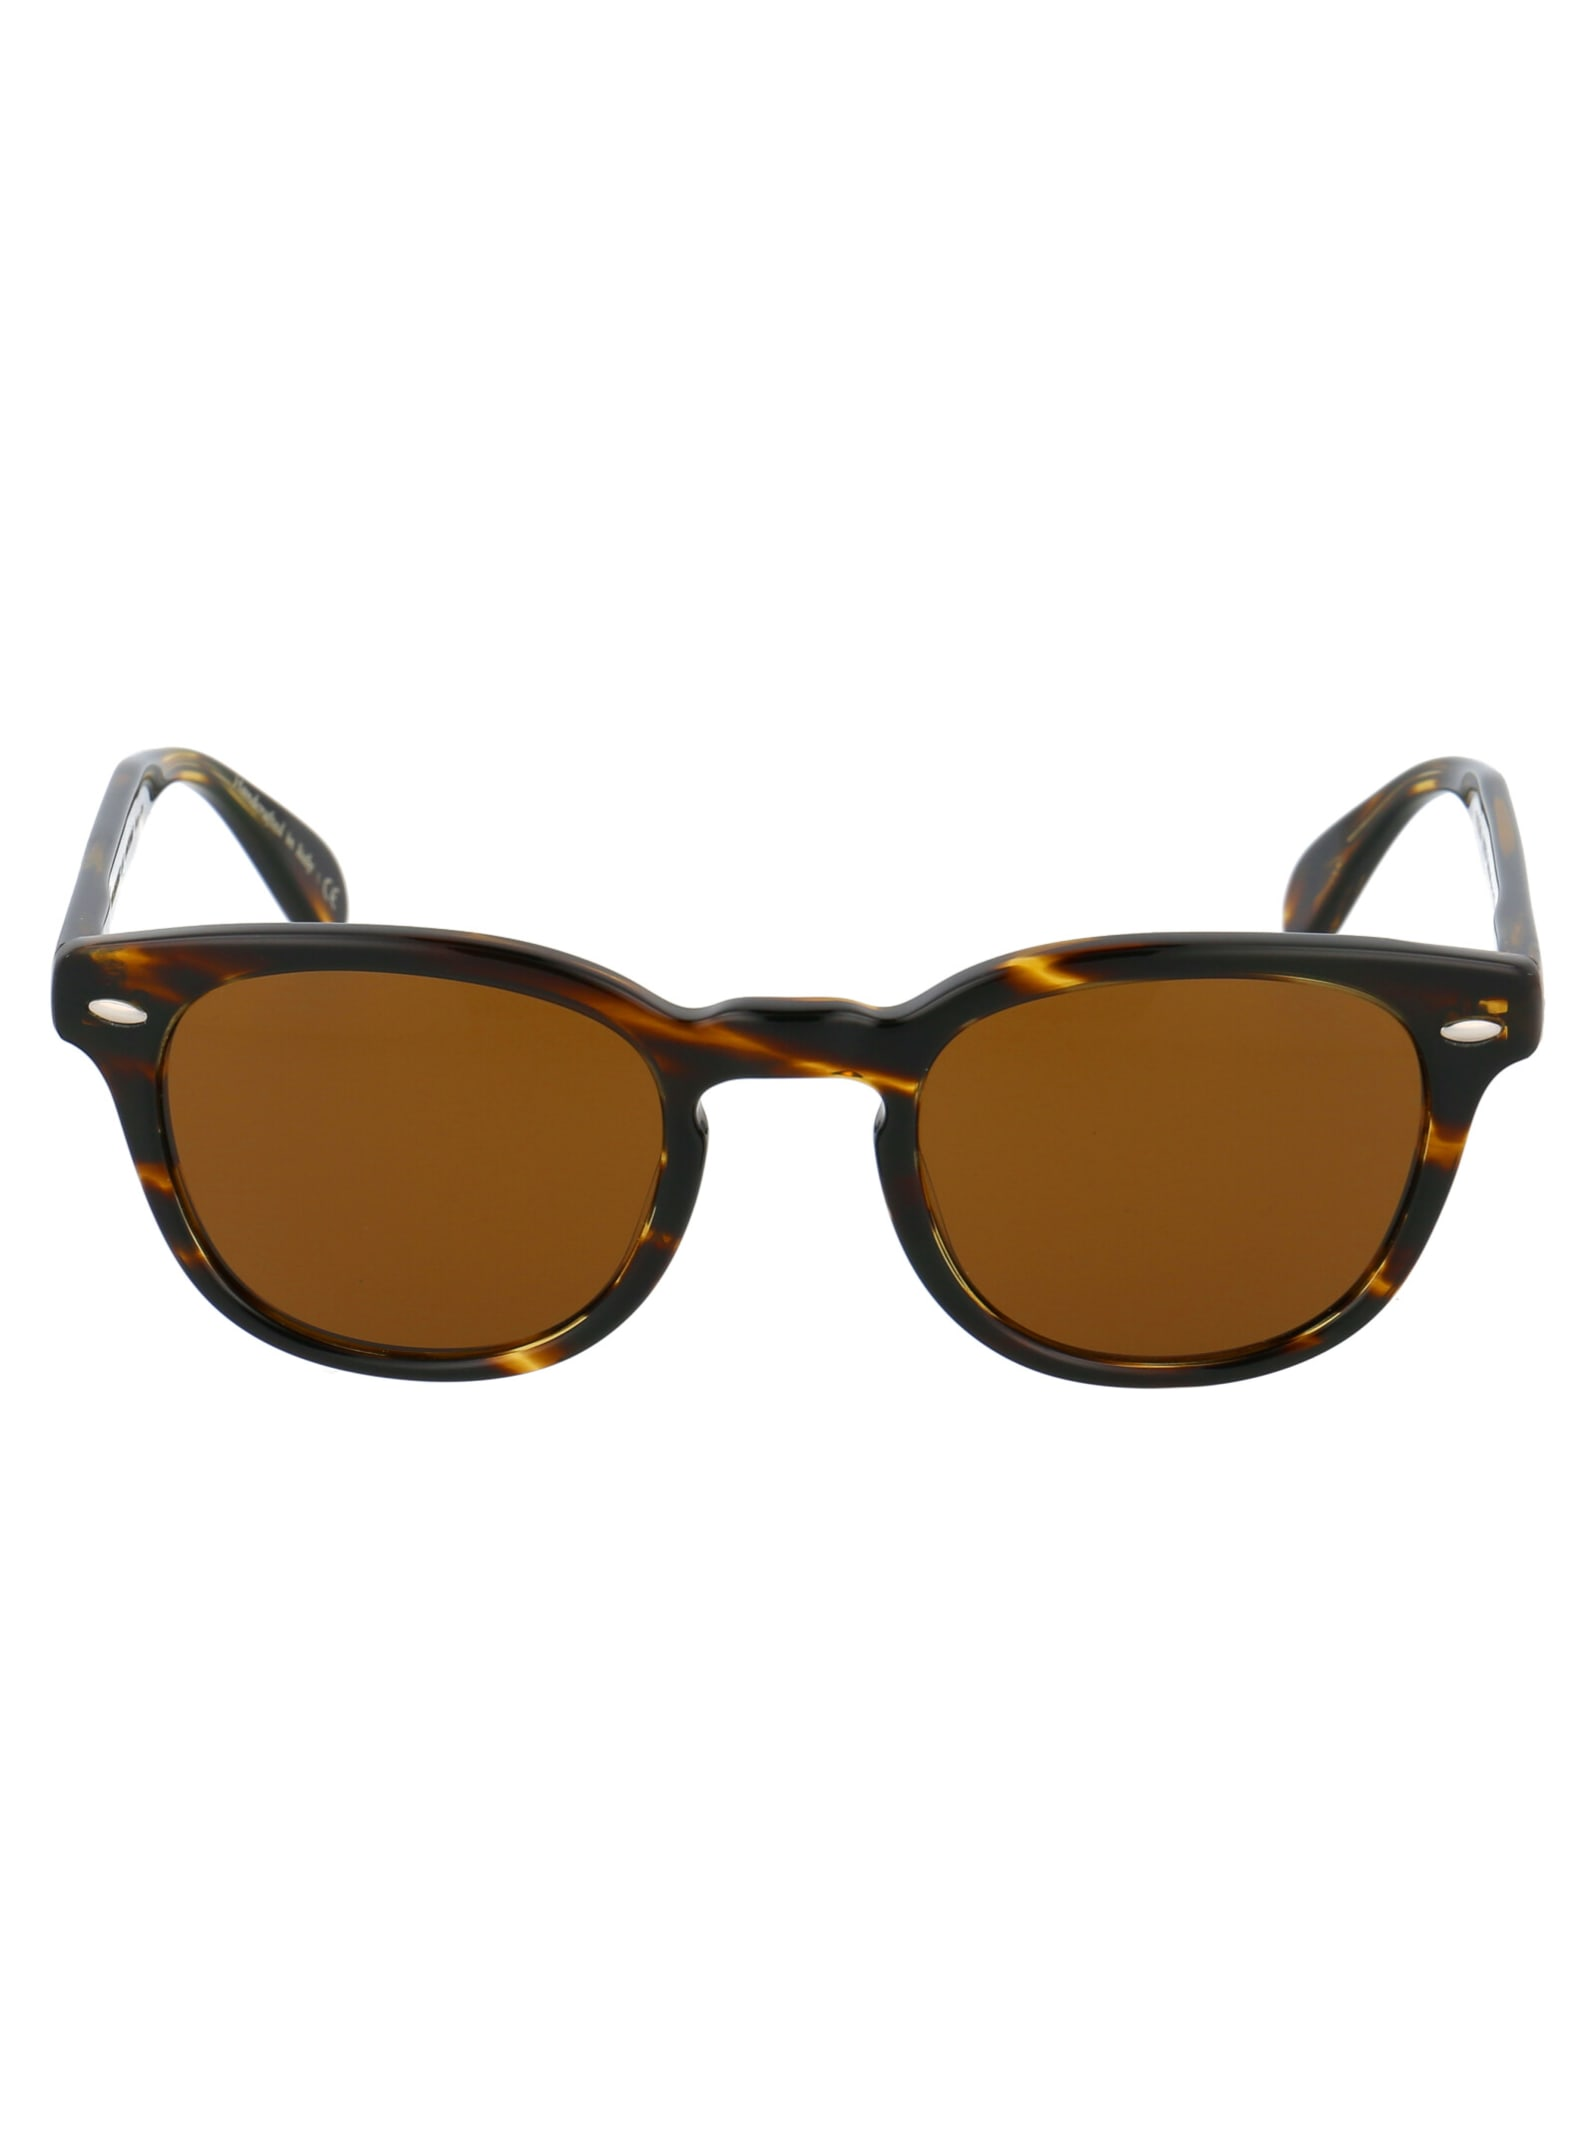 Sheldrake Sun Sunglasses